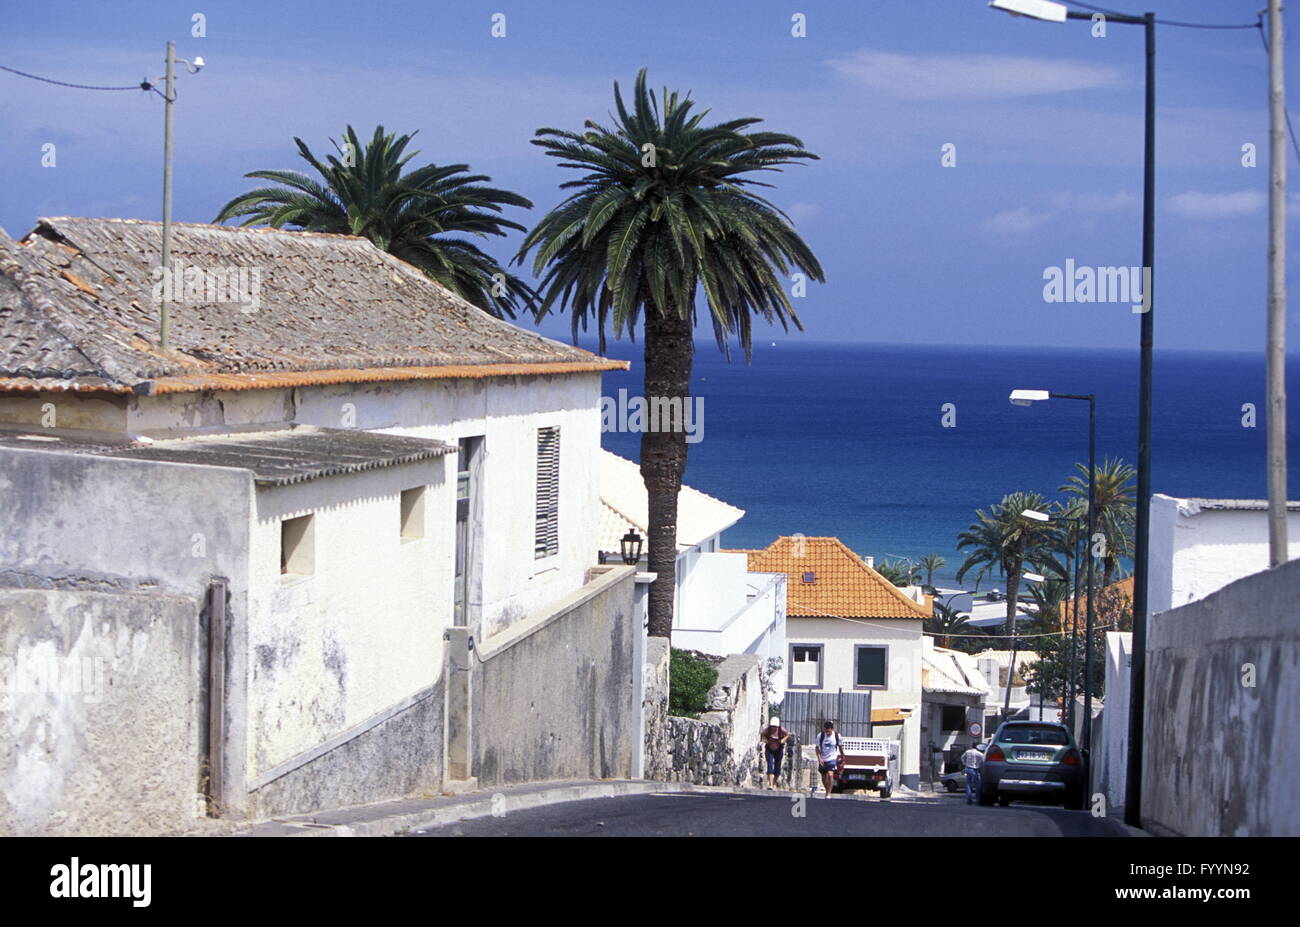 EUROPE PORTUGAL MADEIRA PORTO SANTO Stock Photo